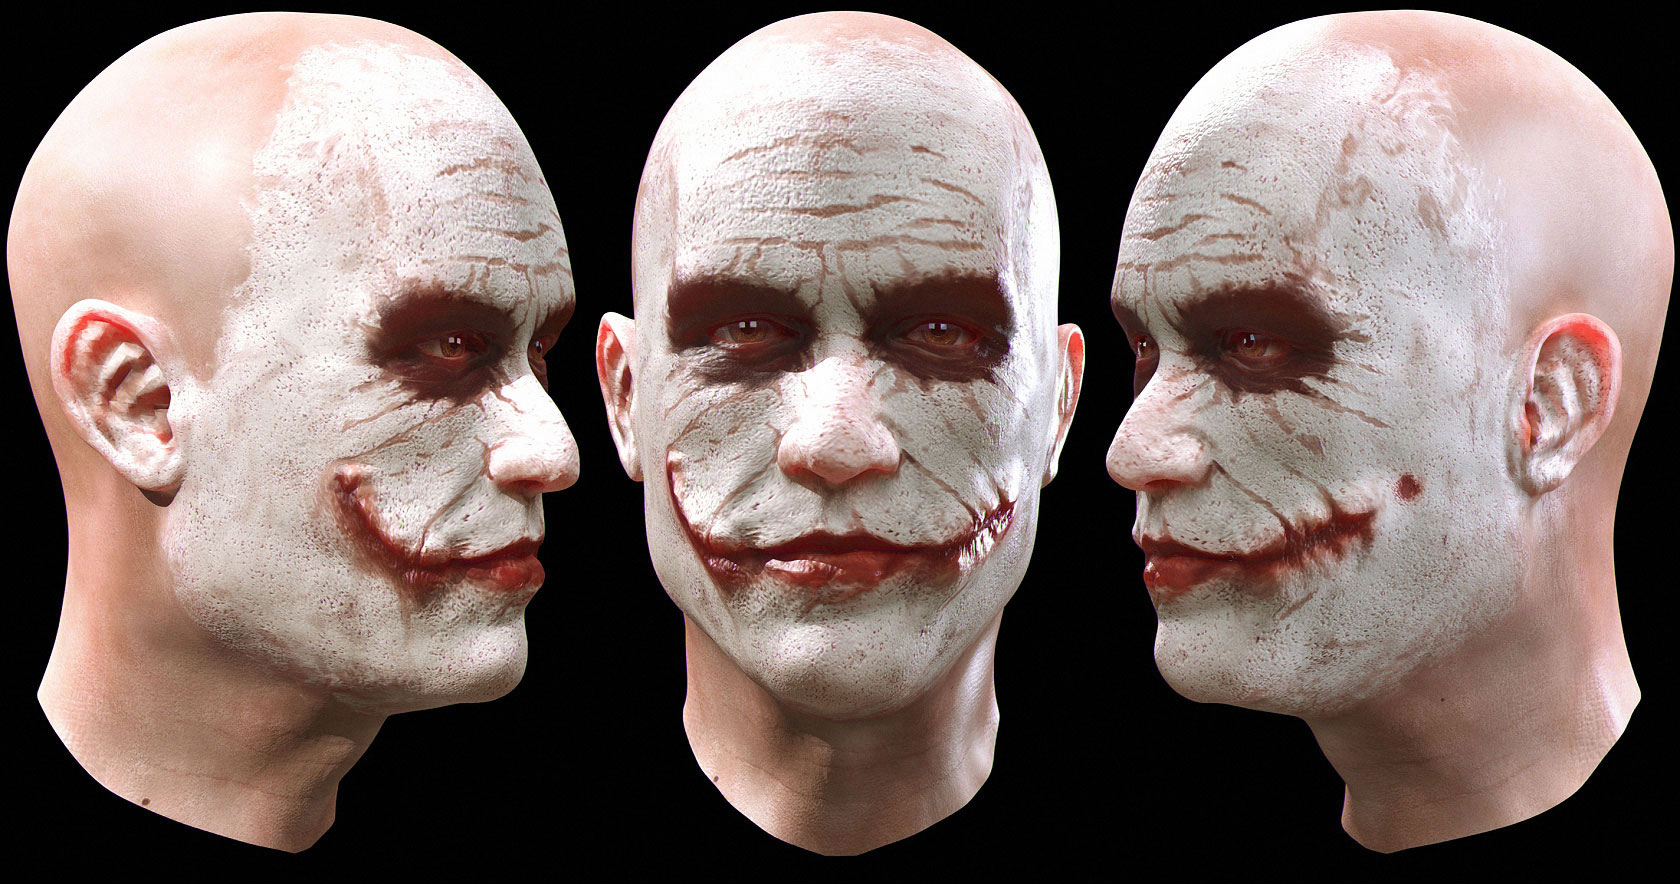 Zbrush Joker revisited by alexanderstojanov